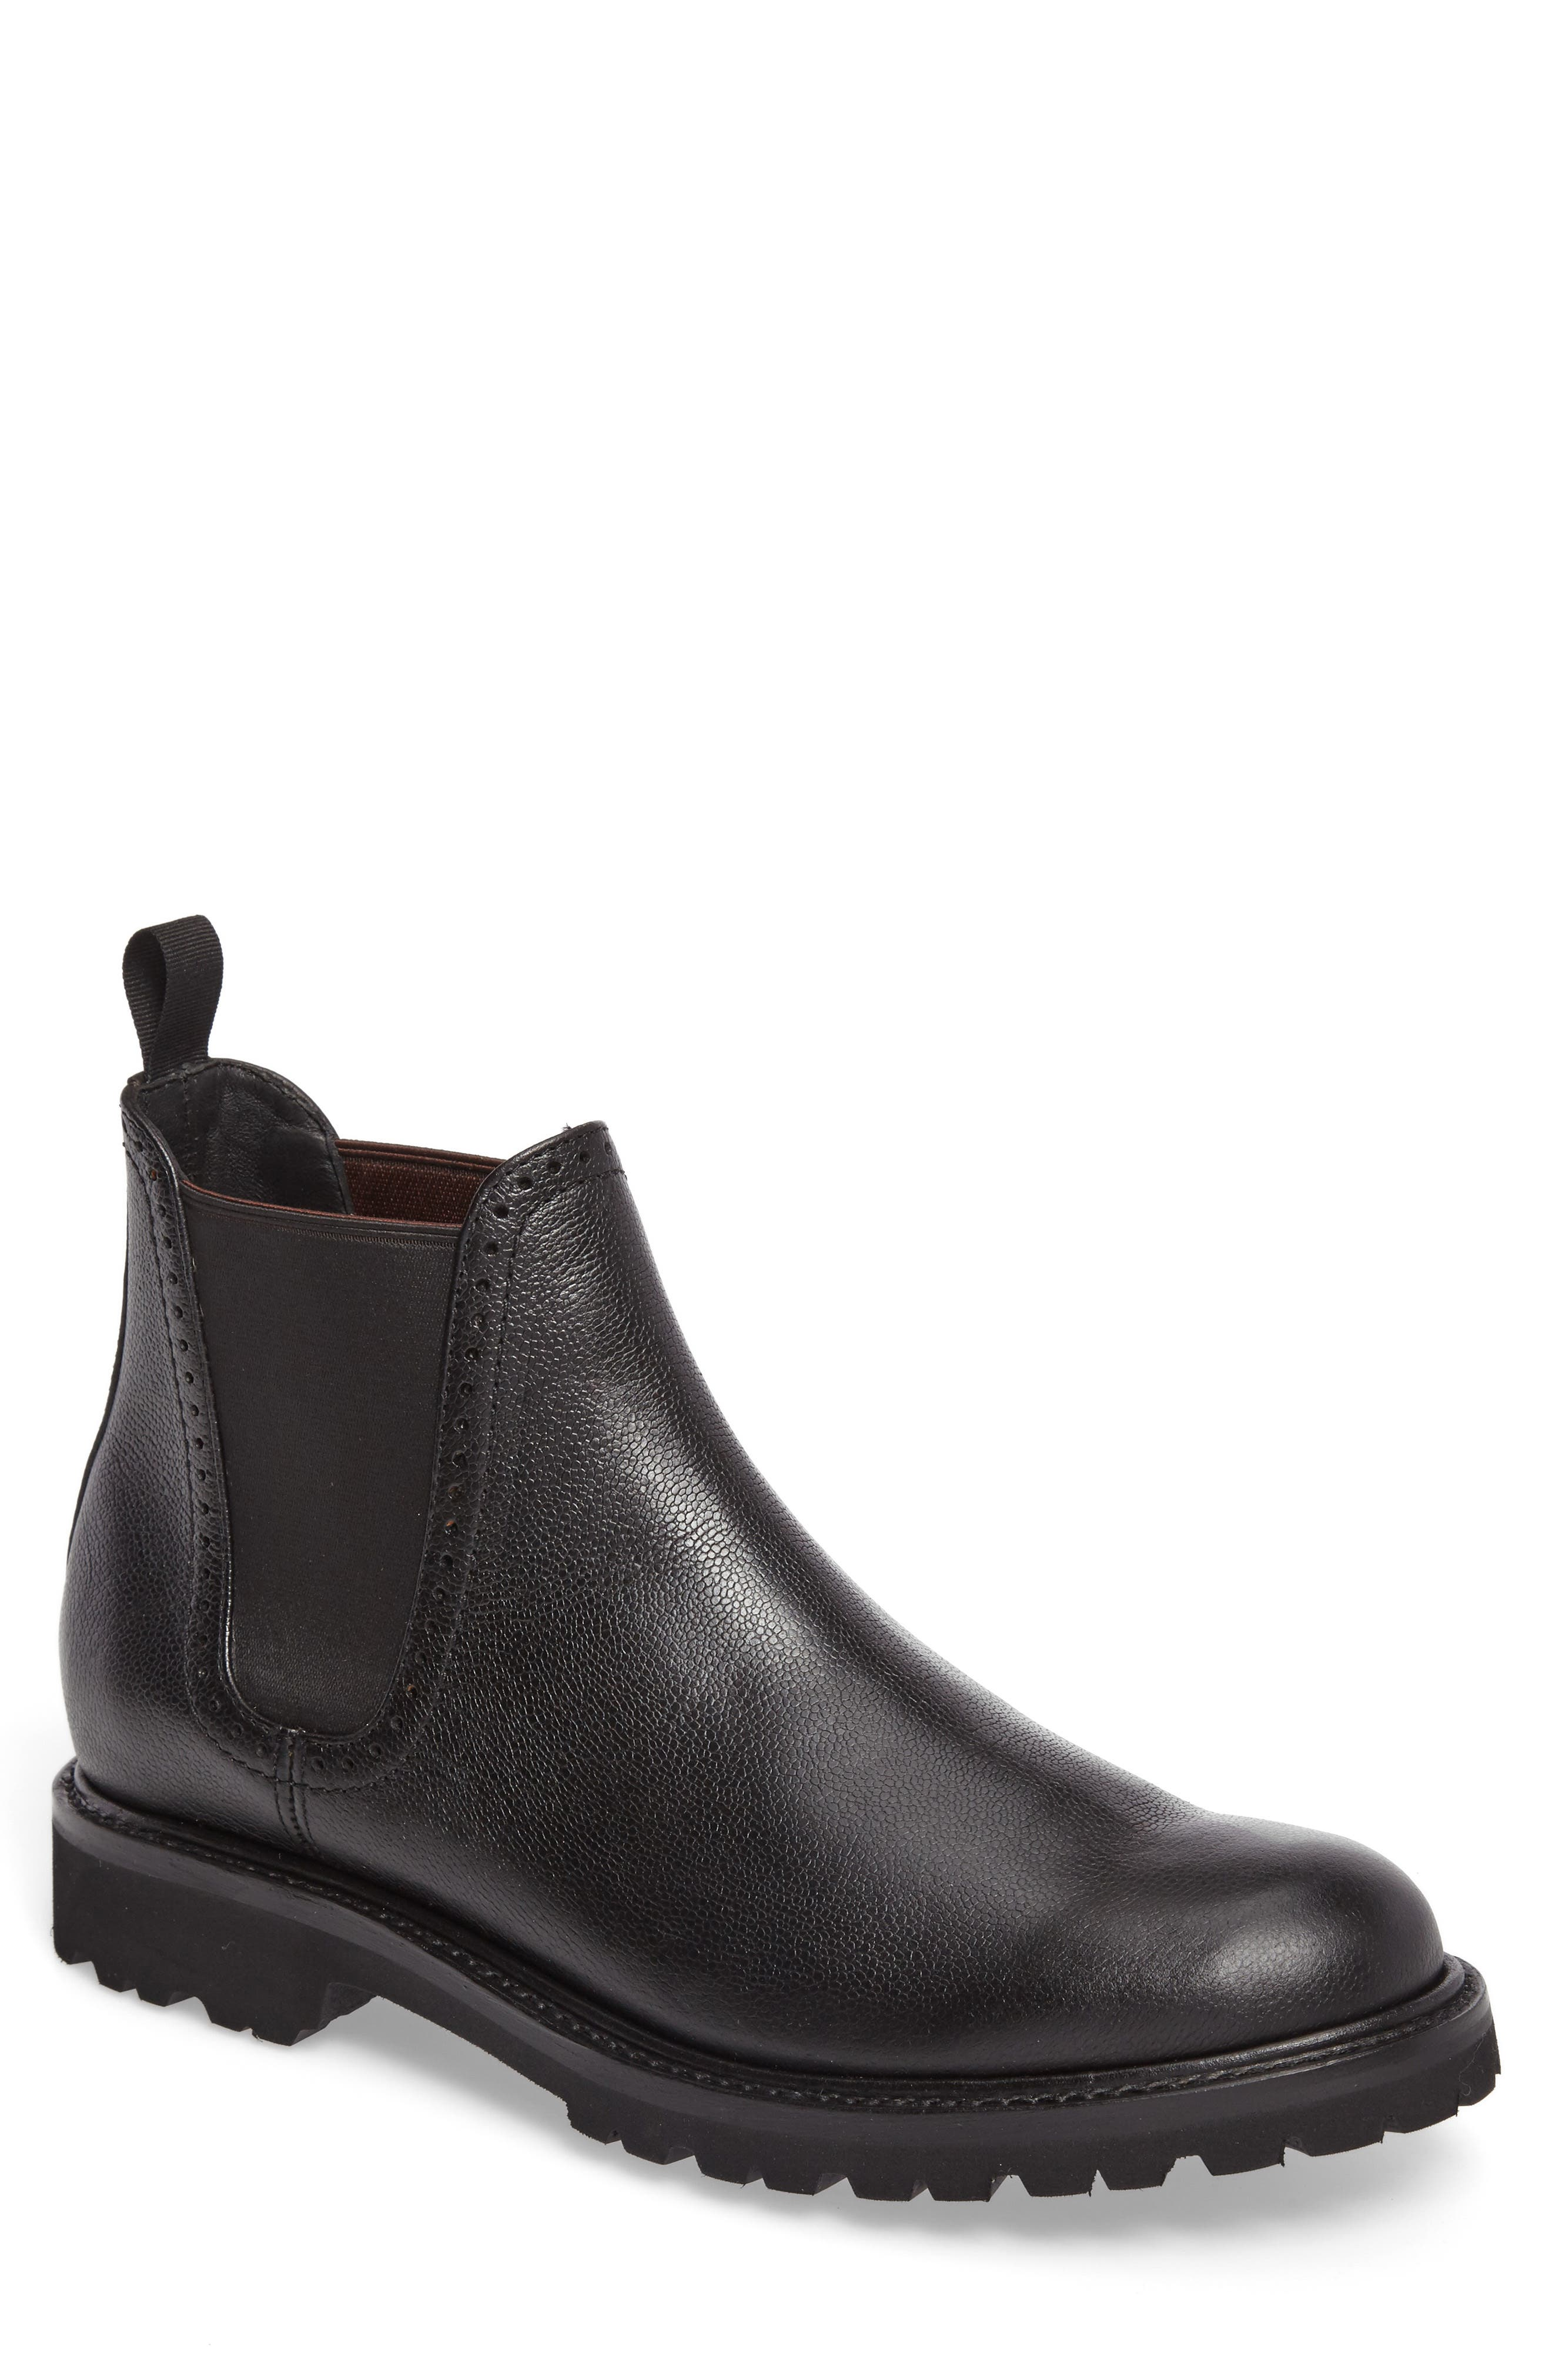 Cromwell Chelsea Boot,                         Main,                         color, Black